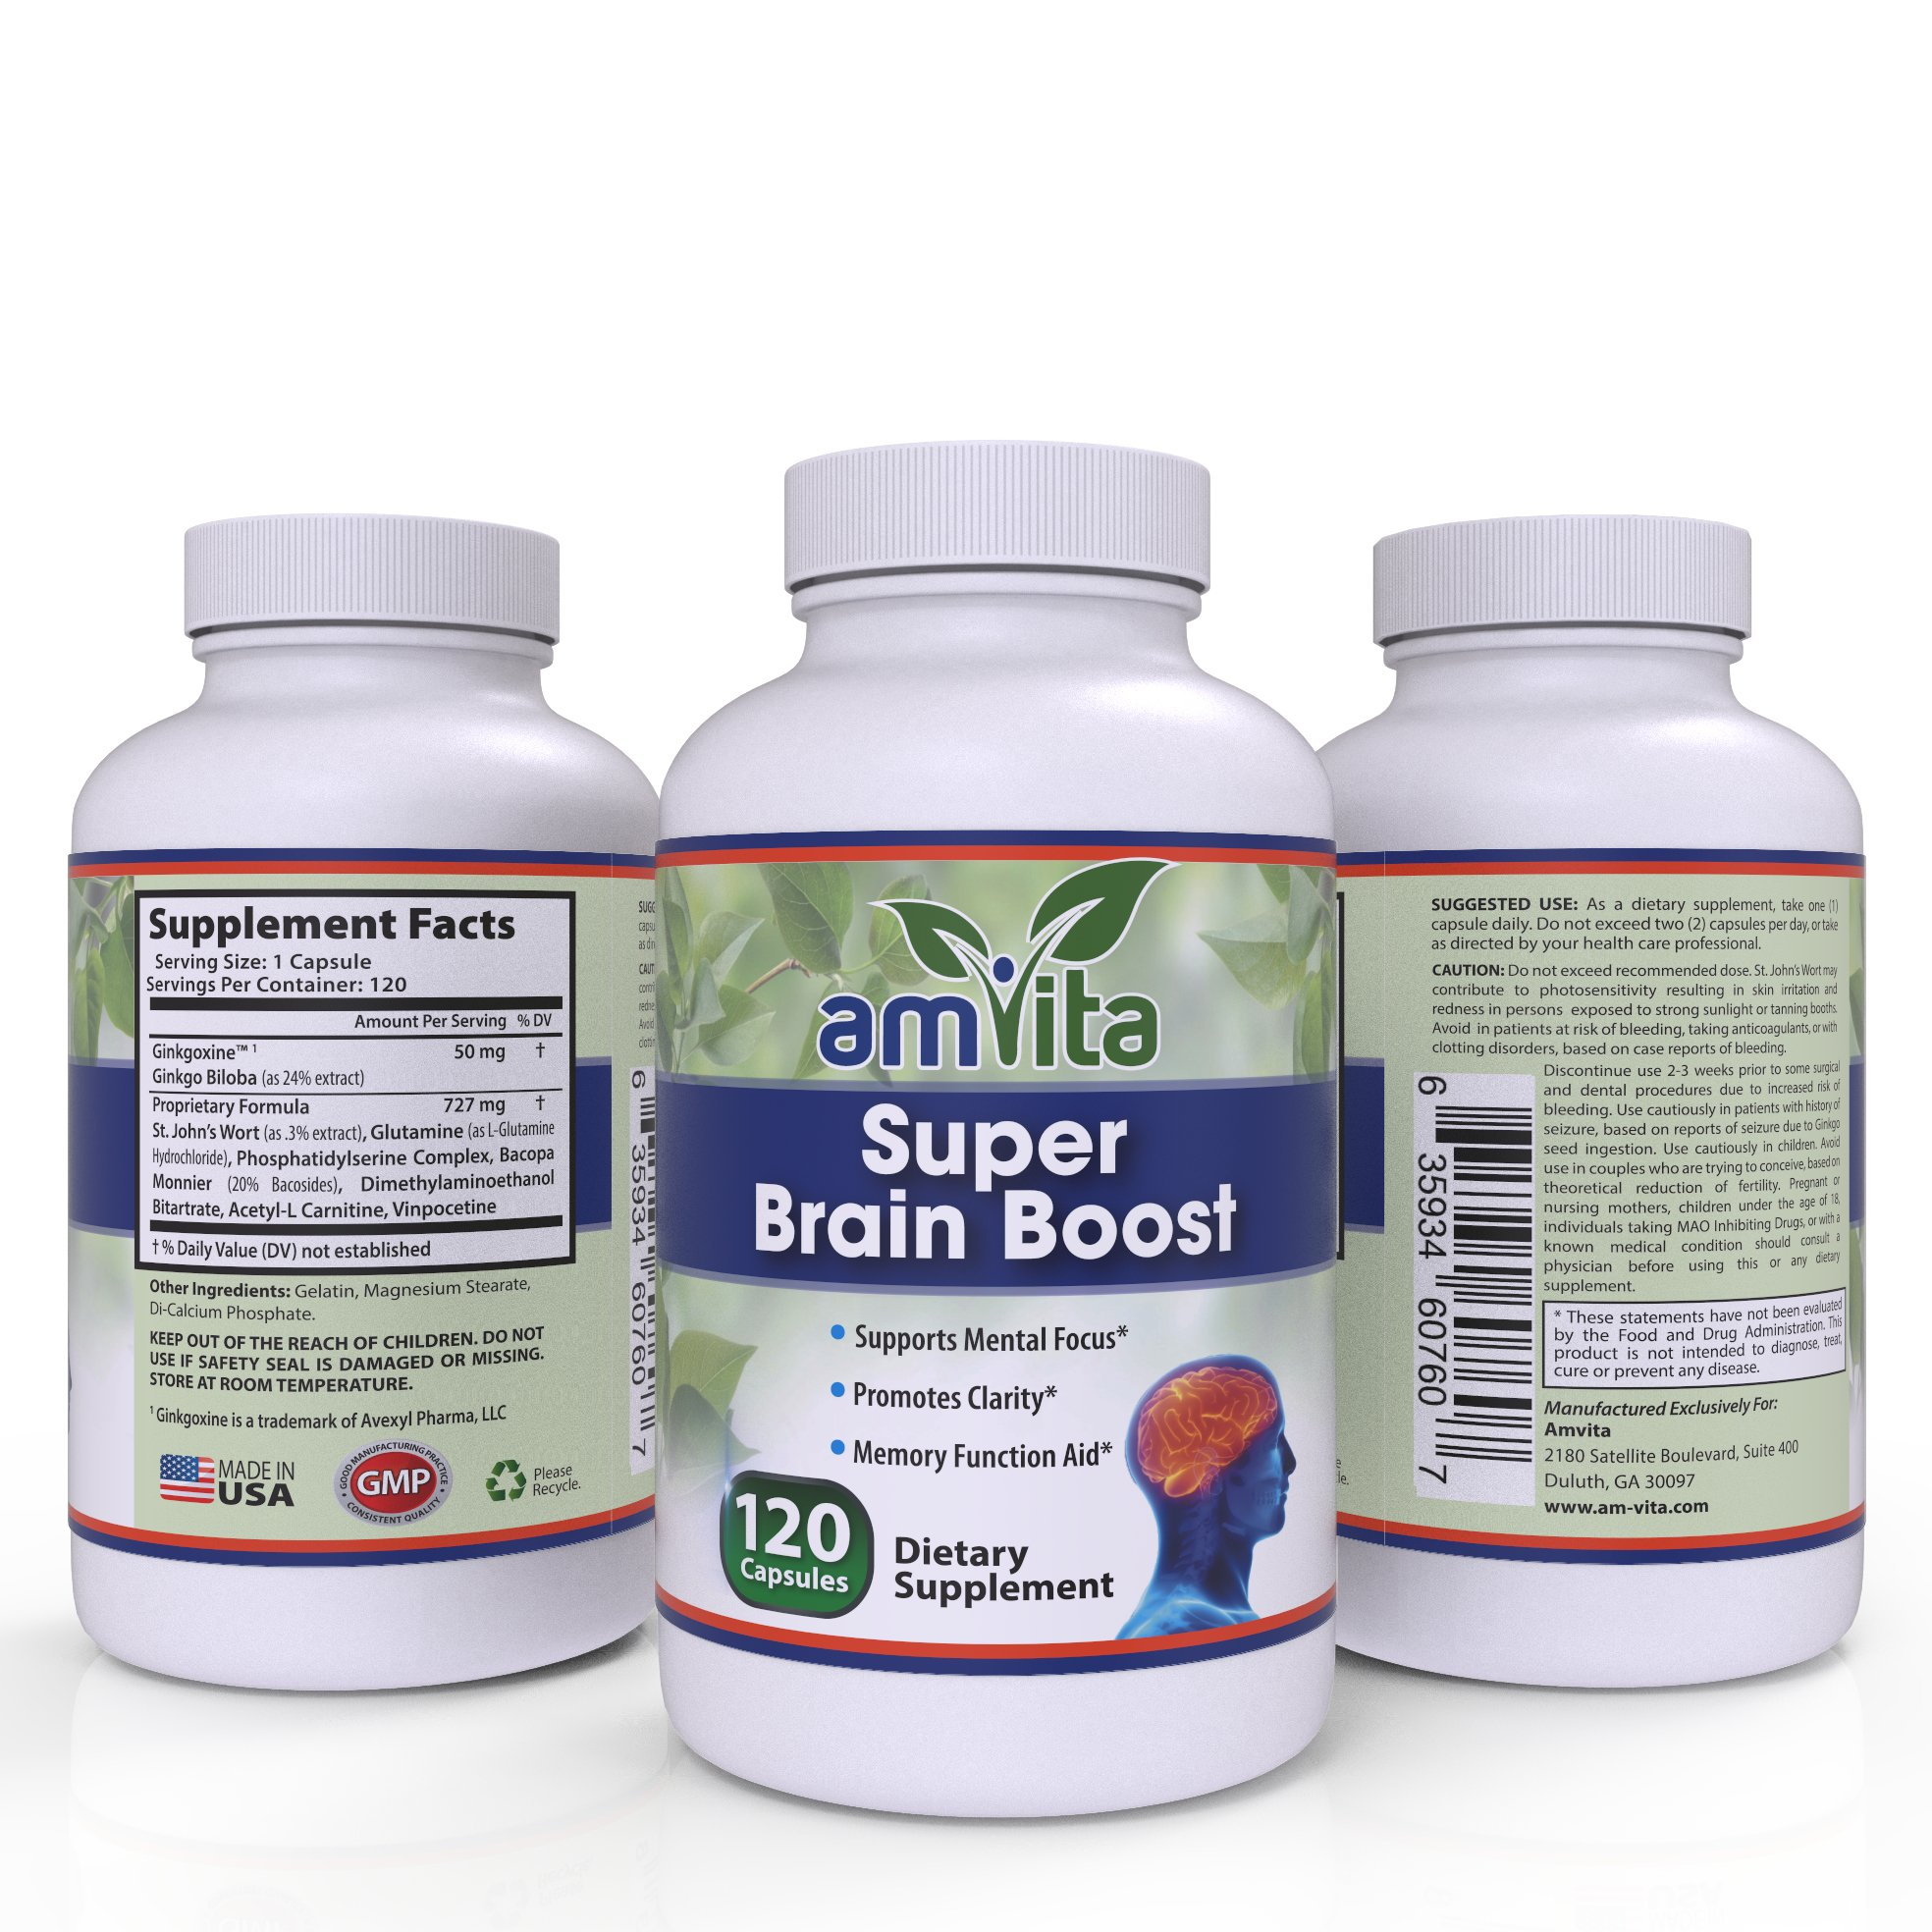 Super Brain Boost Complex All-natural with Ginkgo Biloba, St John's Wort, Bacopa, DMAE, and L-Glutamine - Made in USA - Neuro Functions, Memory, and Concentration - 120 Capsules